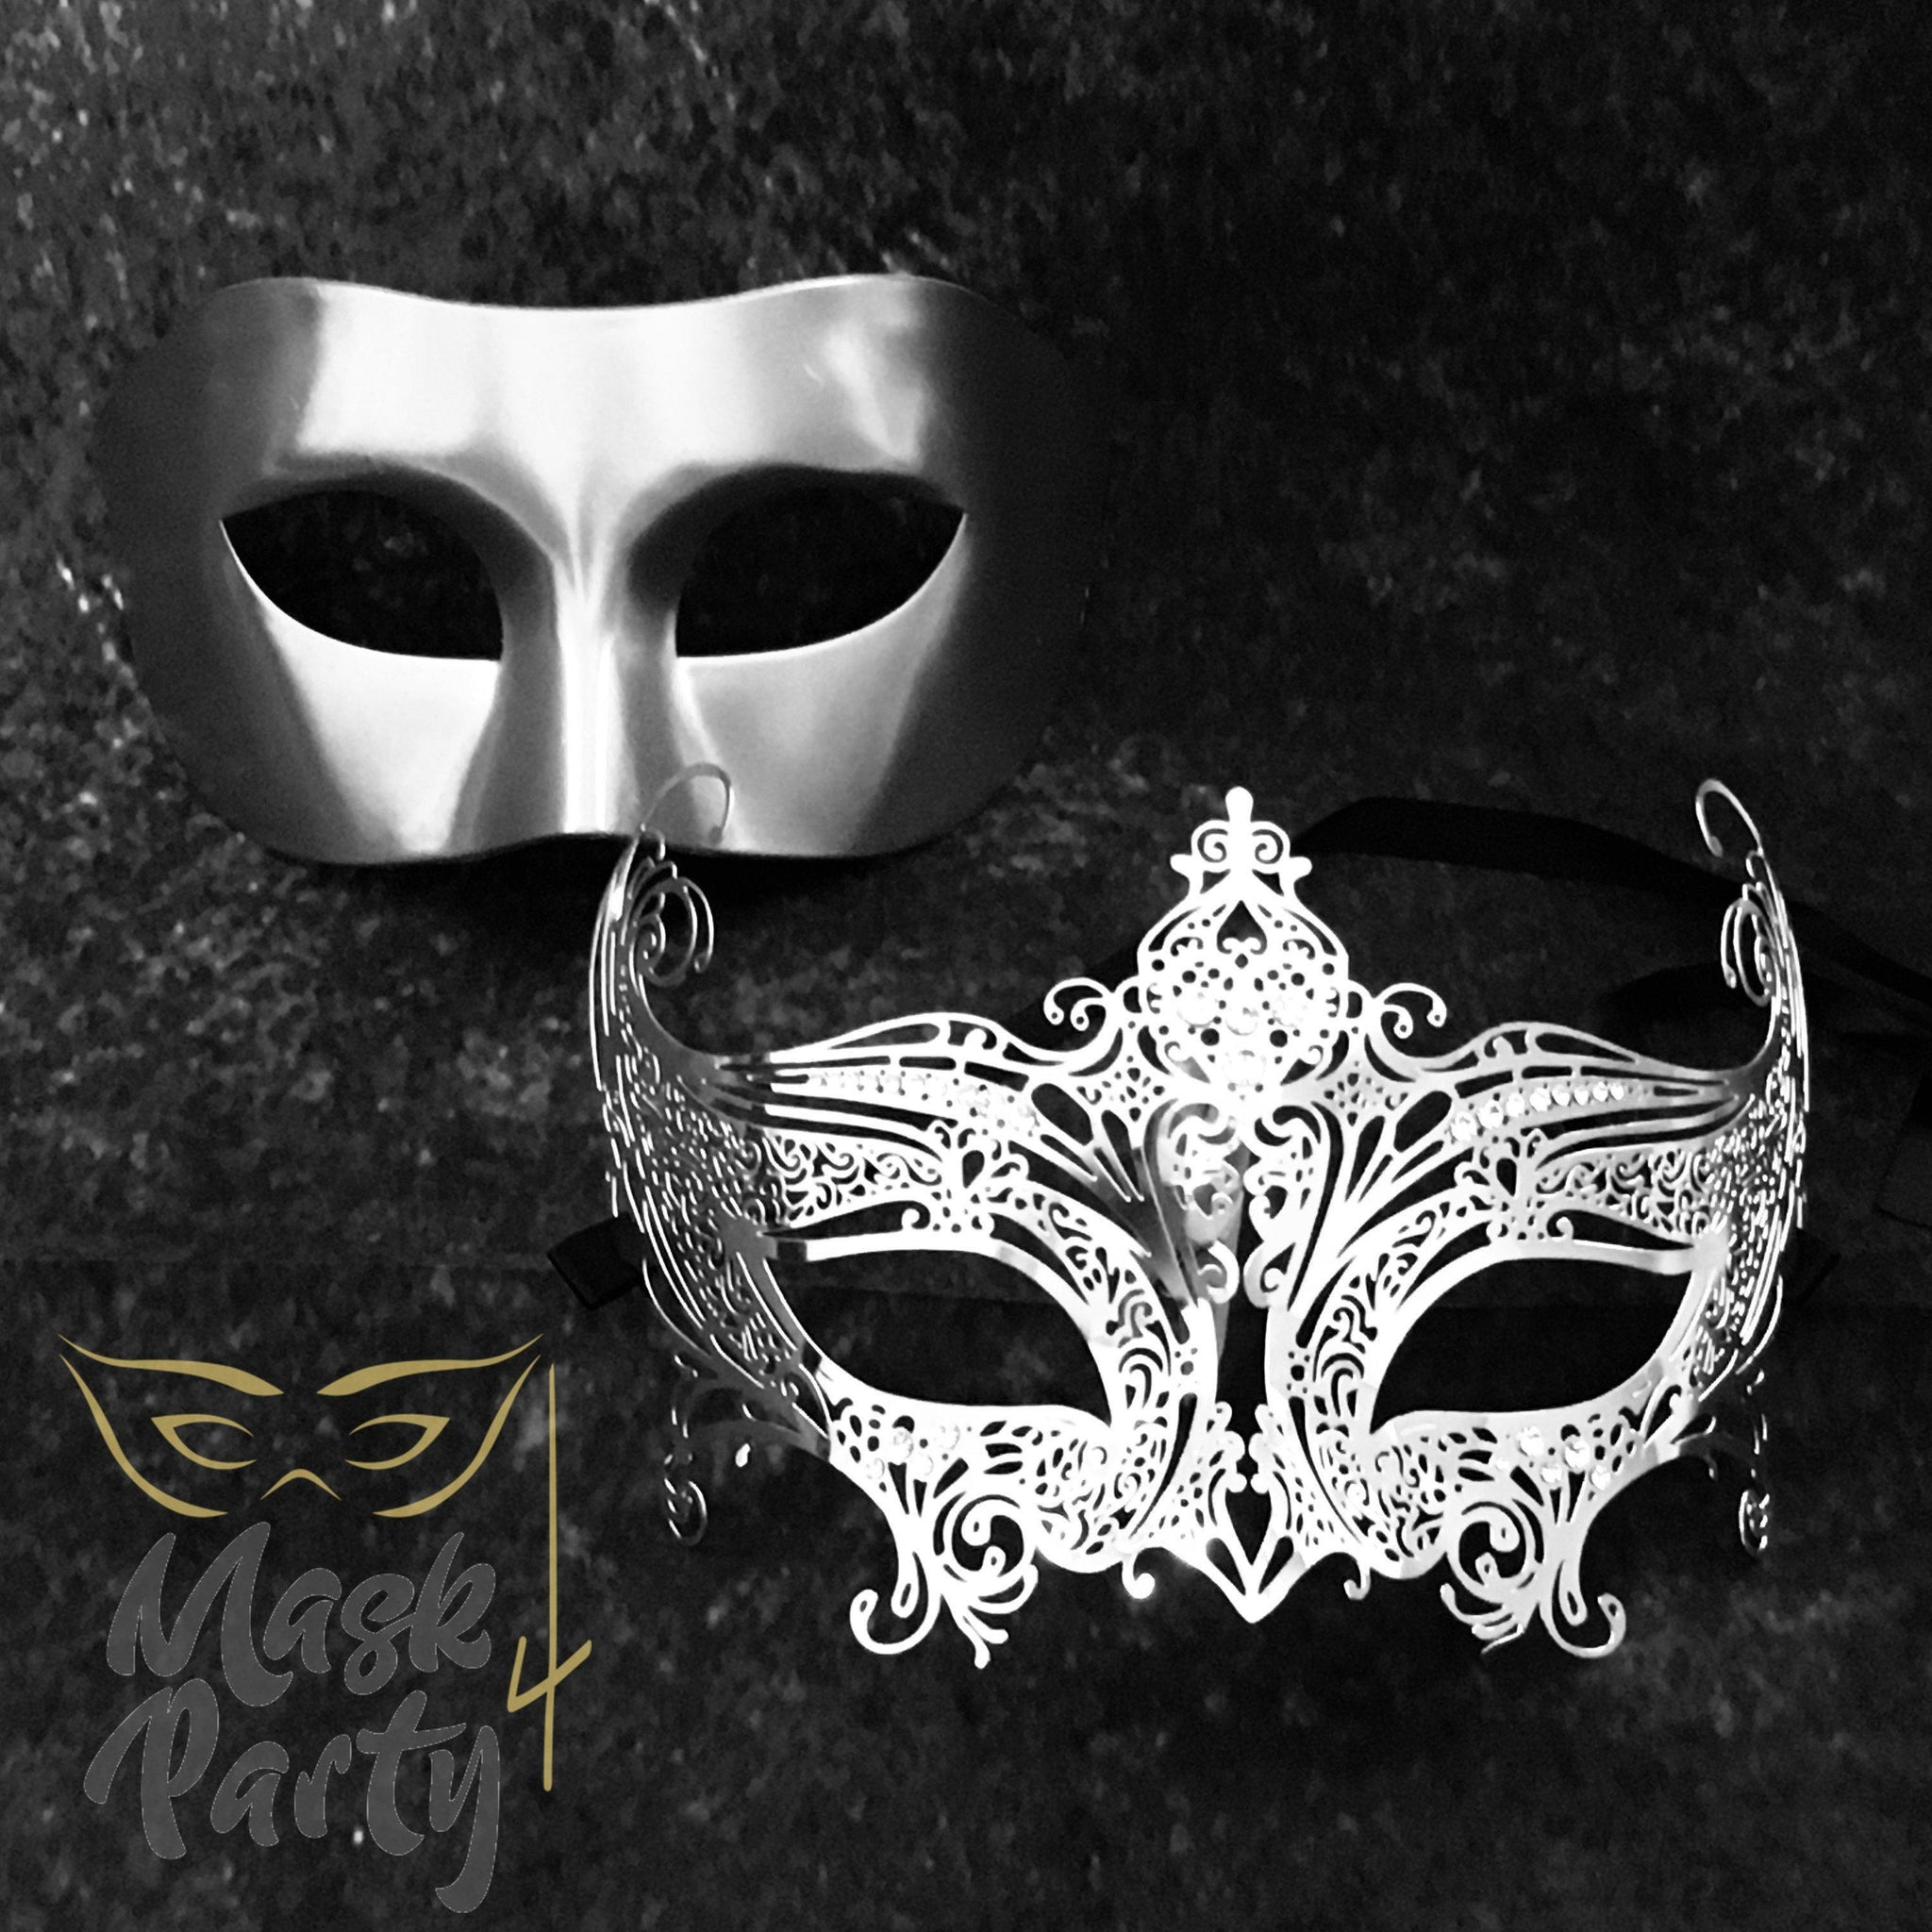 NEW - Masquerade Masks - Venetian Eye & Filigree Metal - Silver - Mask4Party